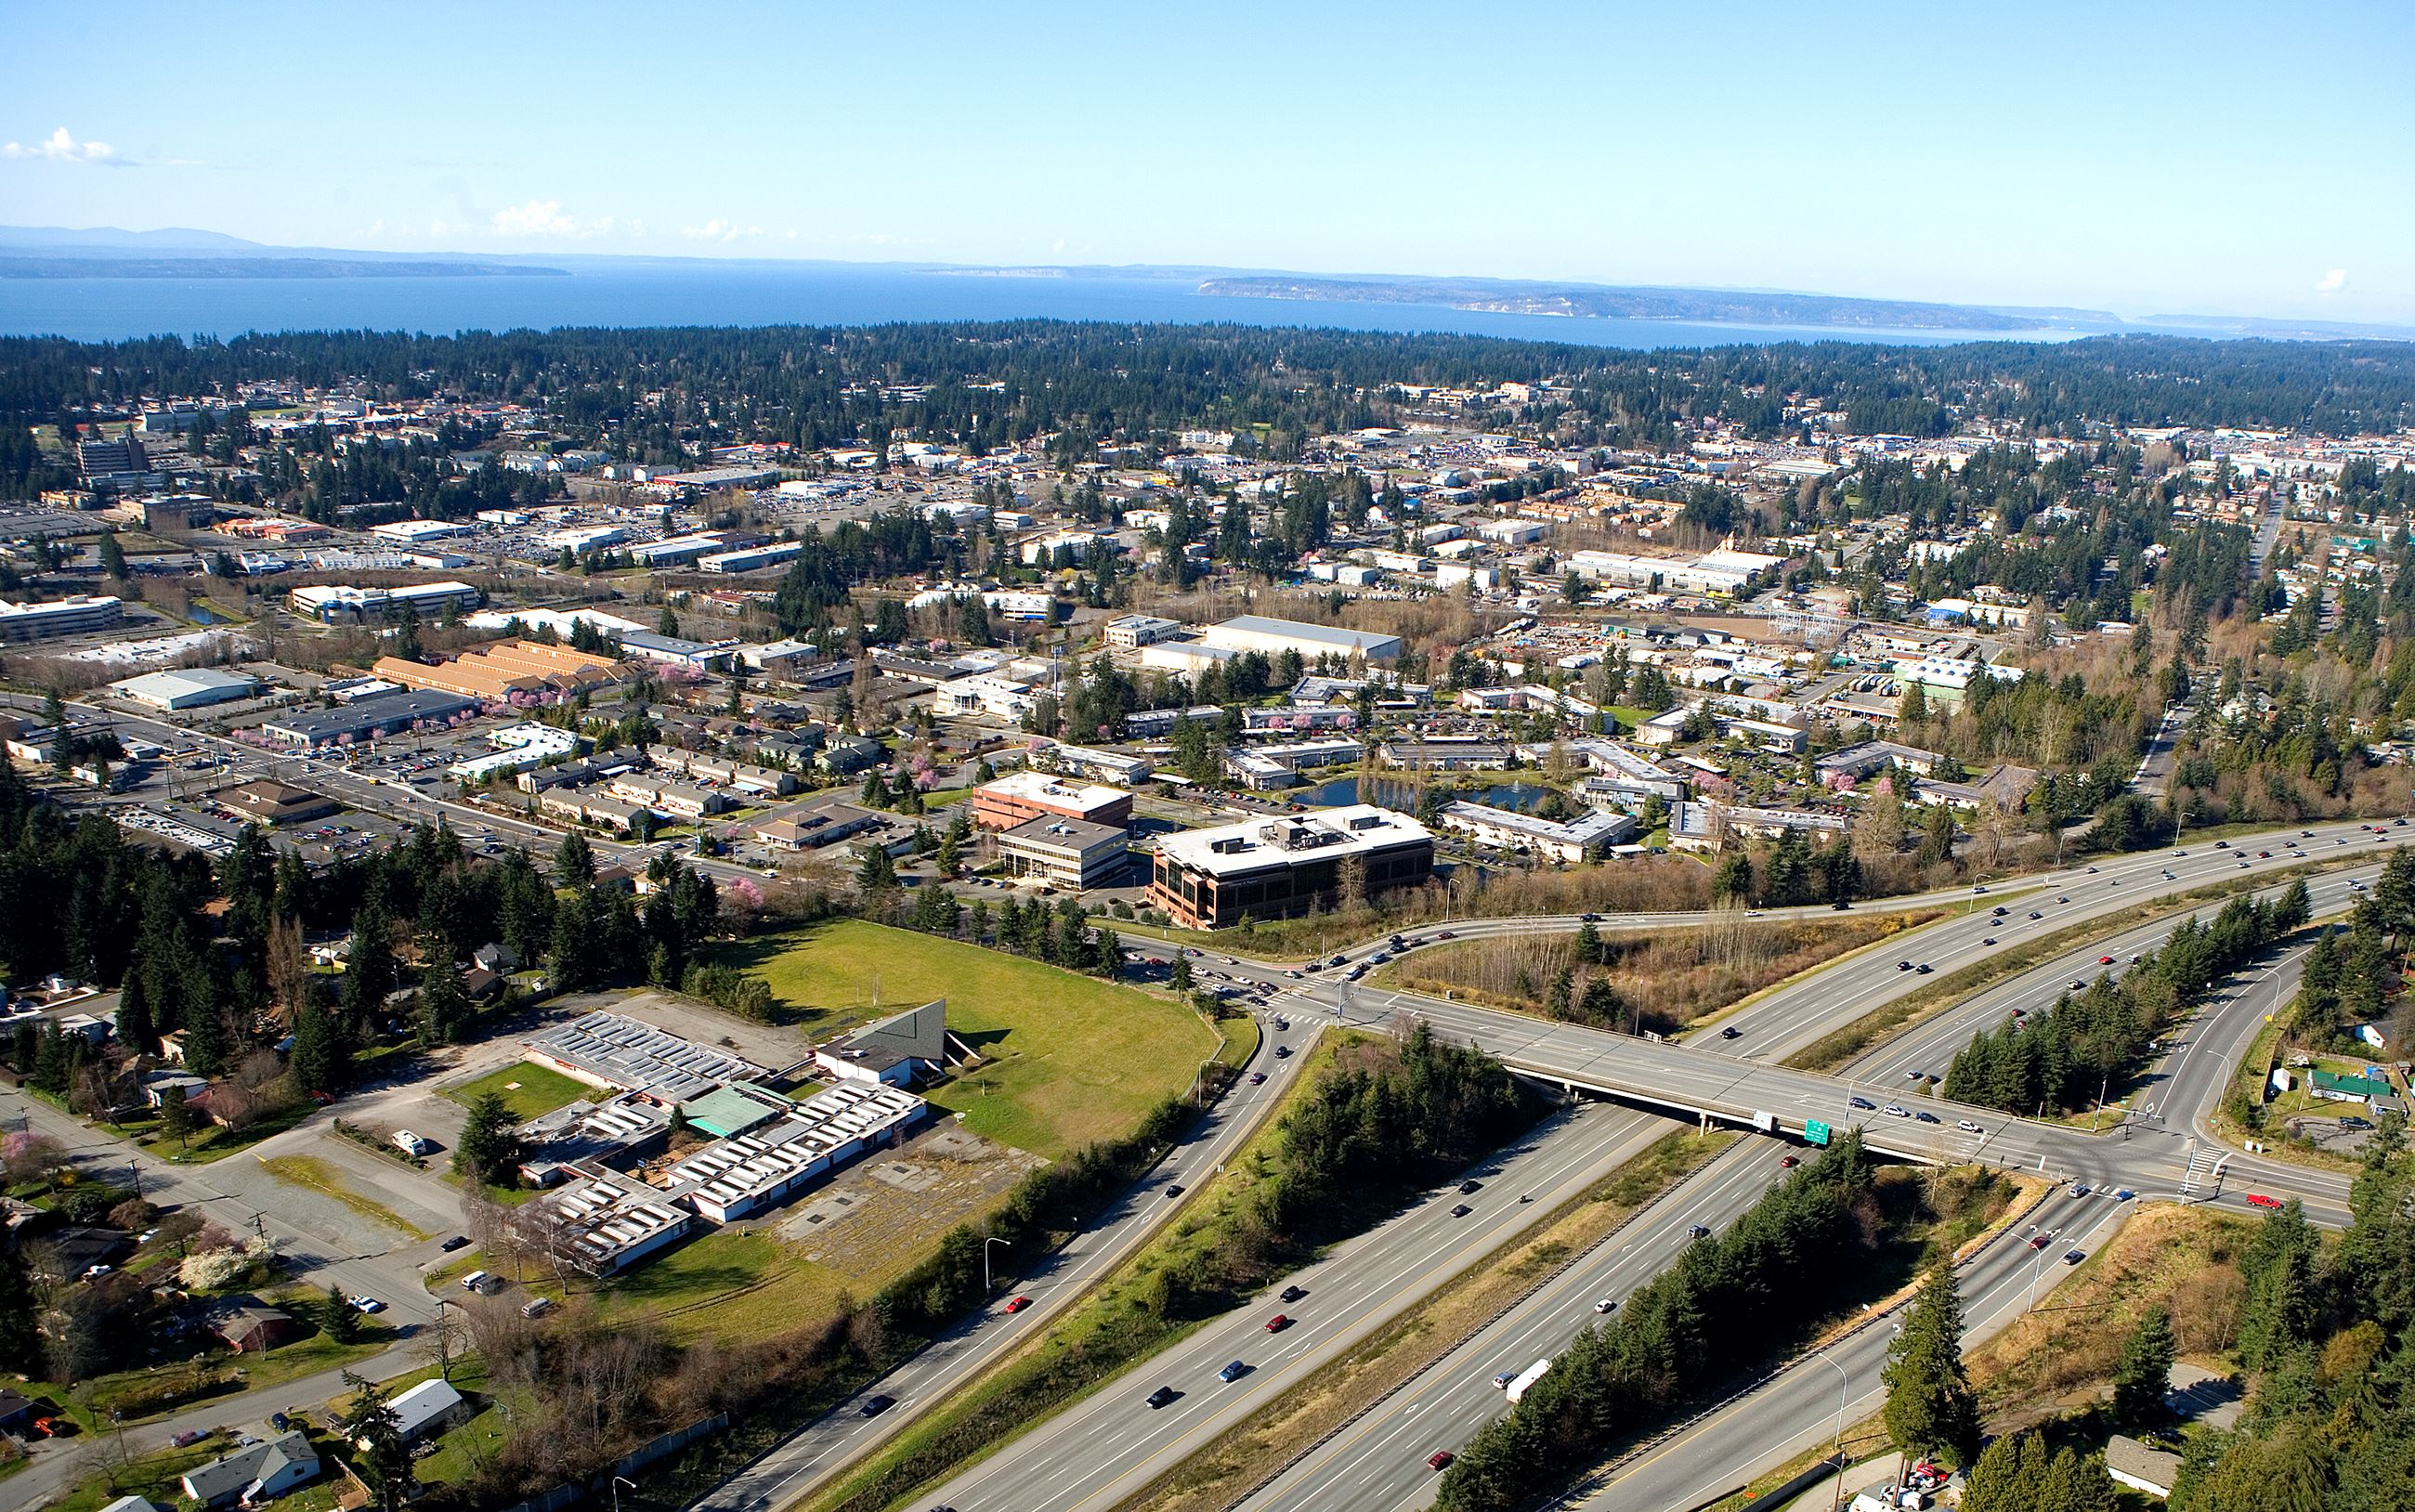 Aerial View of 220th Corridor